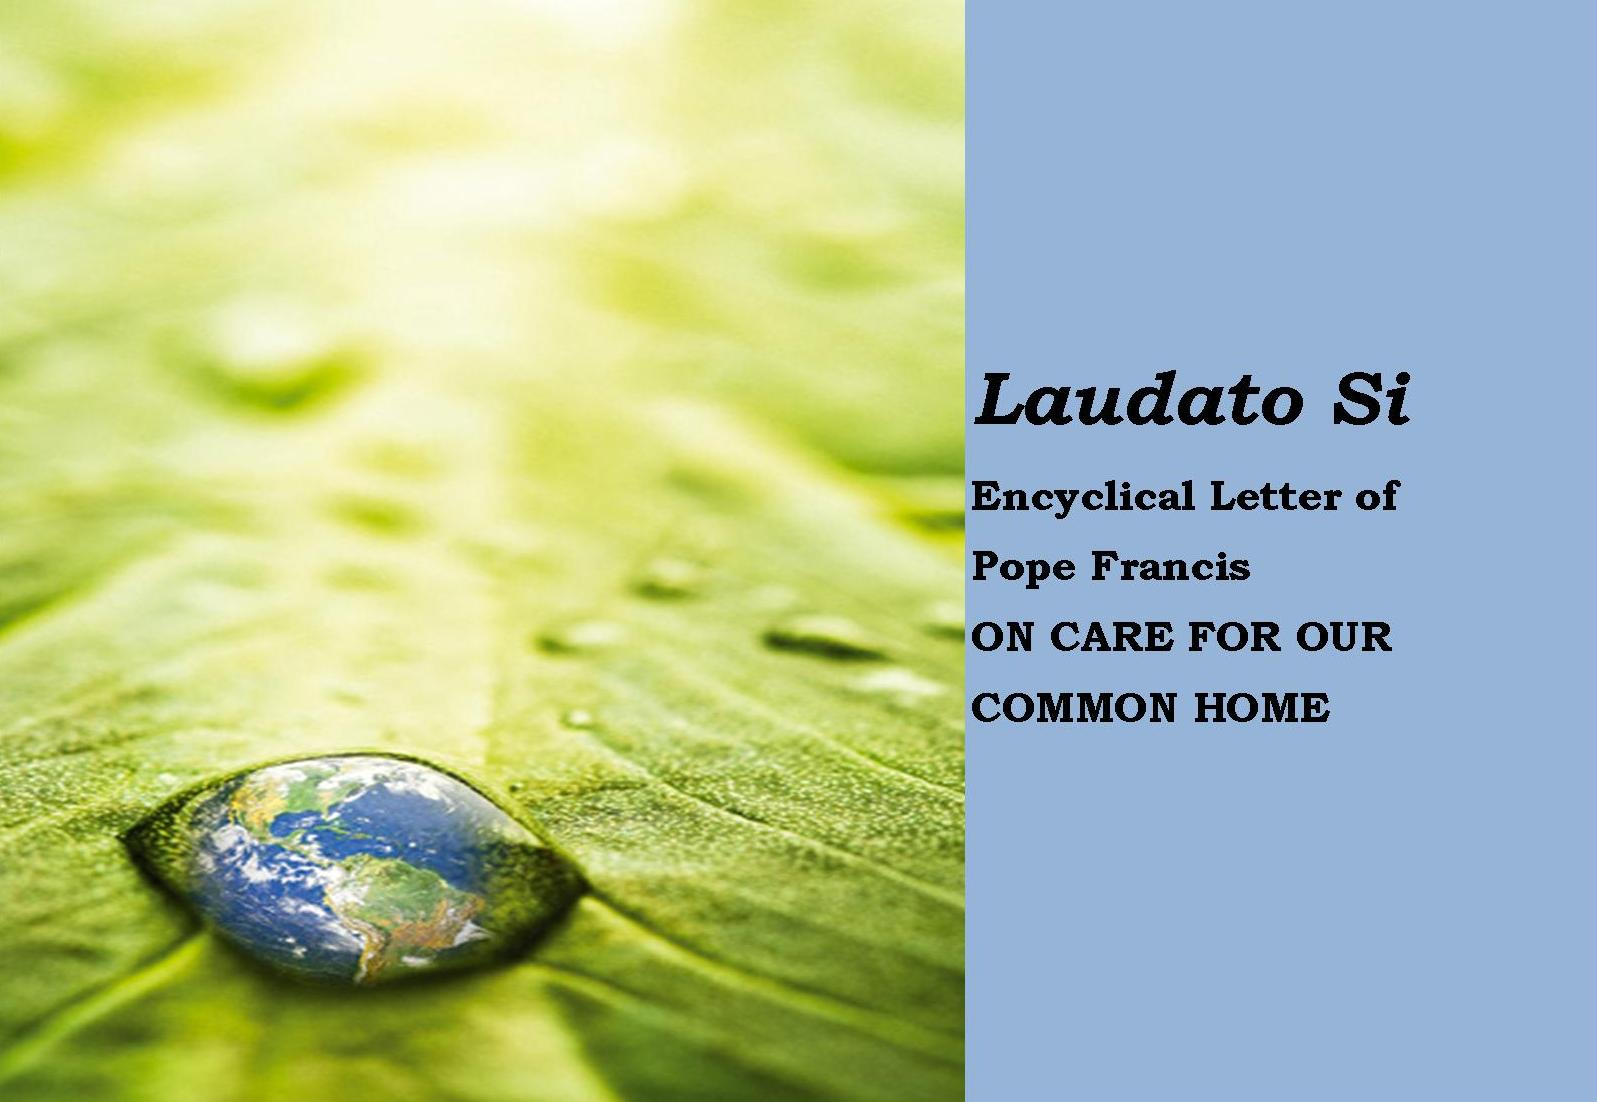 laudato si encyclical letter of pope francis on care for our common home